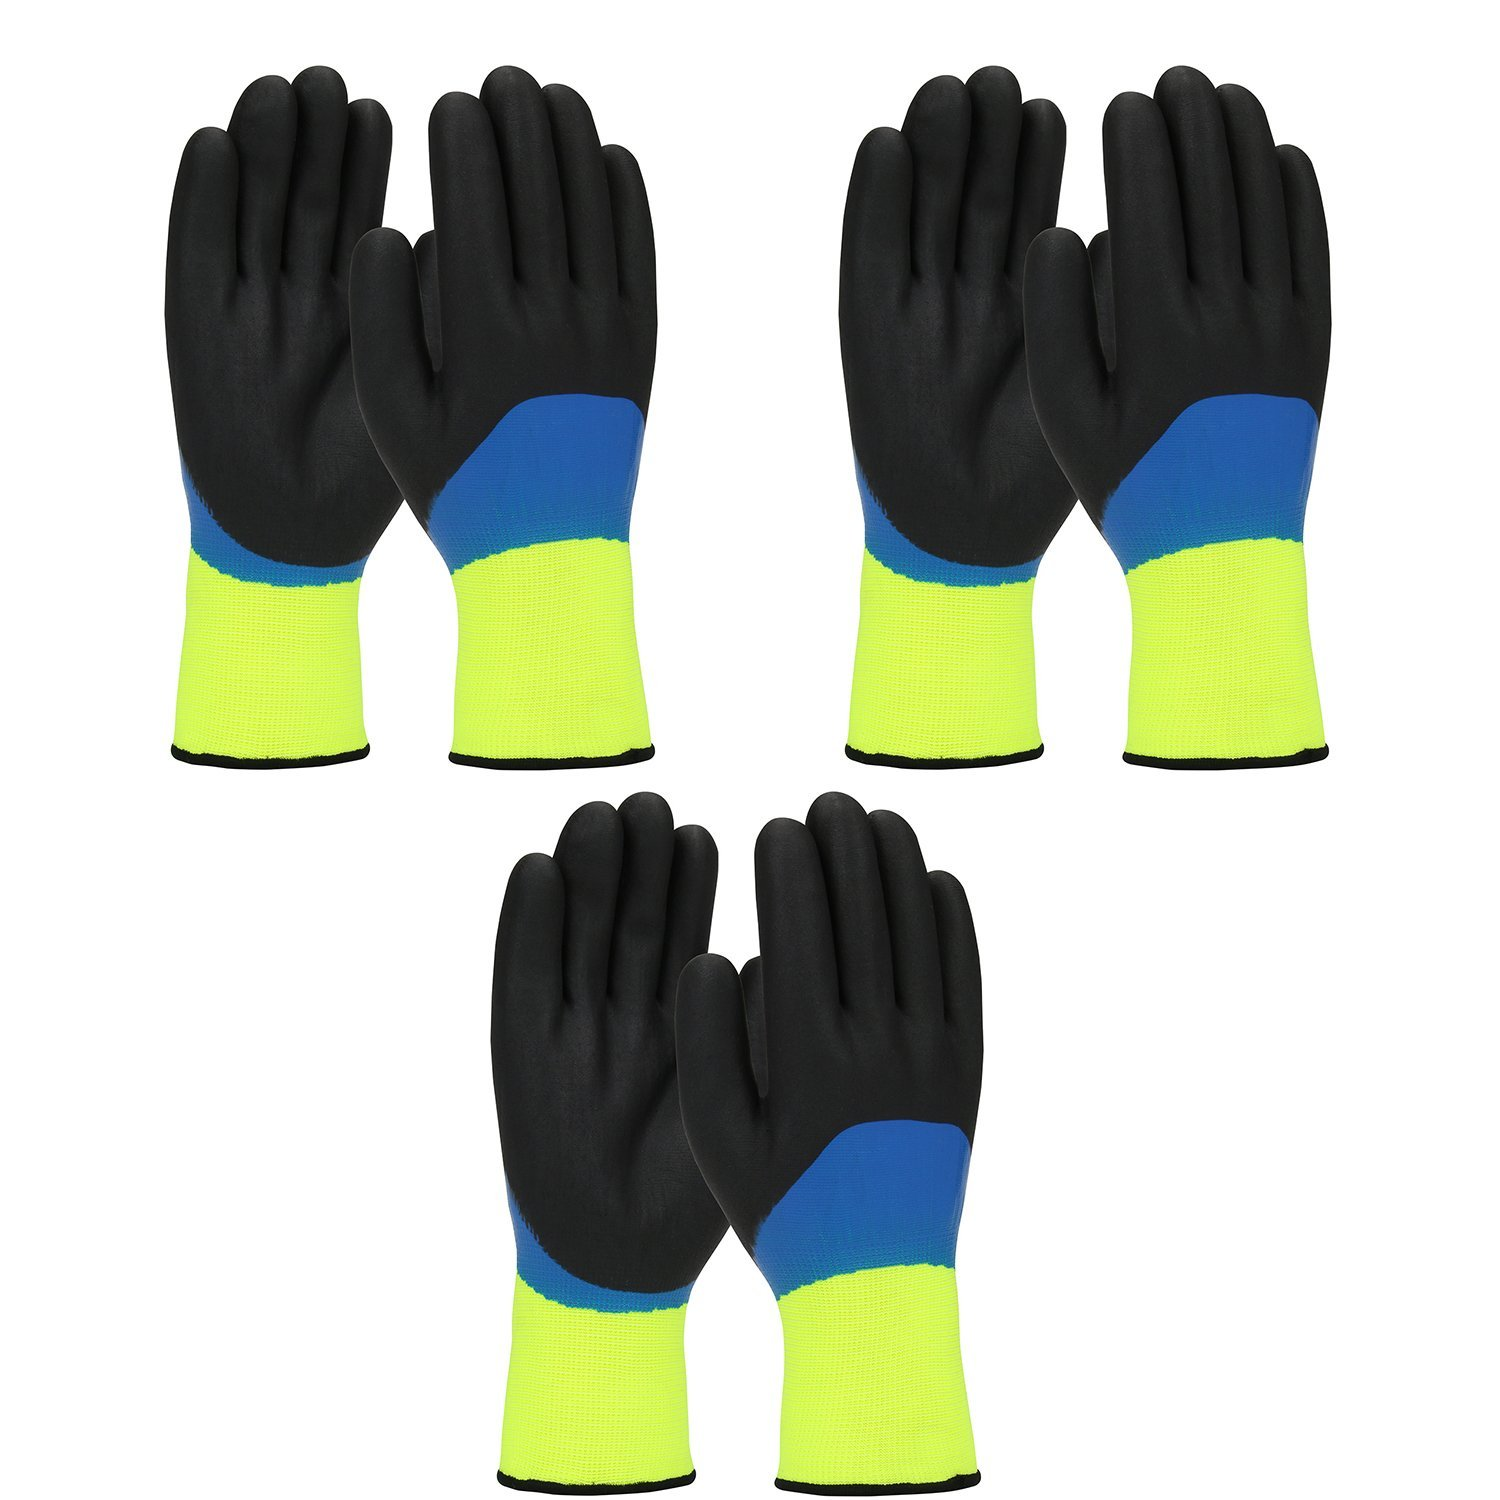 PIP G-Tek 41-1415 Mens/Womens Warm Thermal Waterproof Cold Weather Winter Work Gloves - Double Dipped Nitrile Coated (Large)